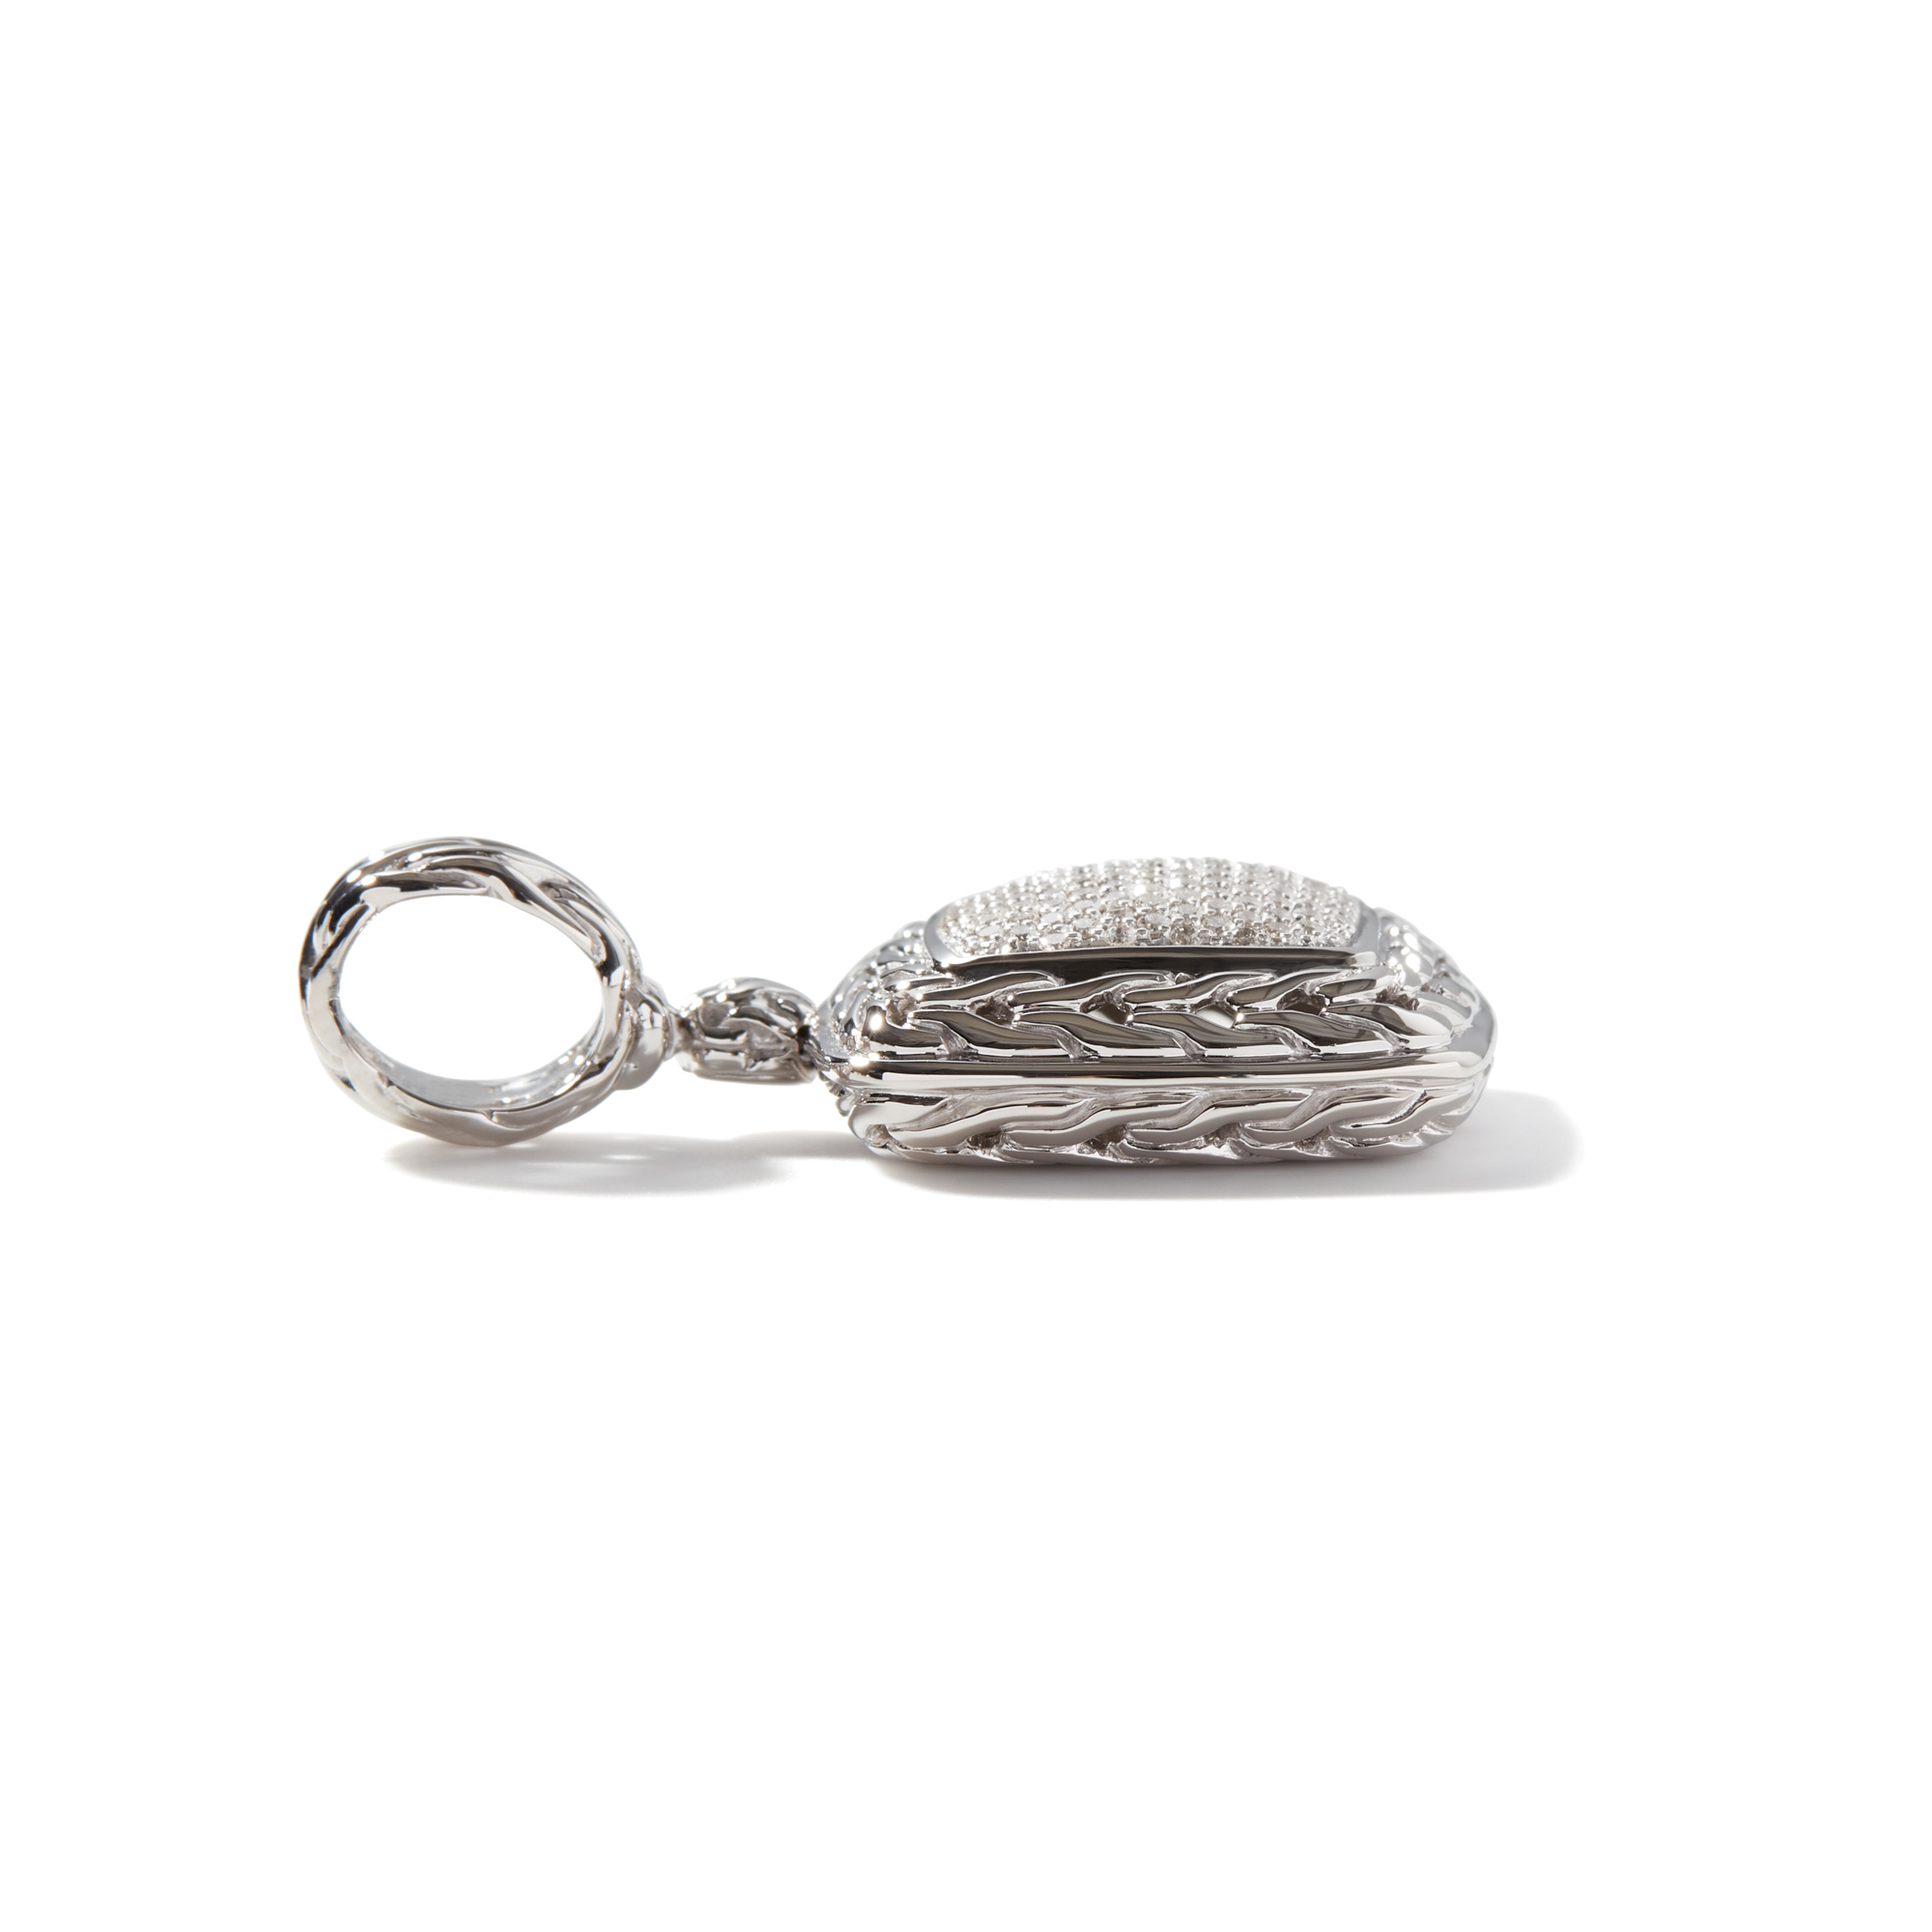 Classic Chain Enhancer in Silver with Diamonds, White Diamond, large